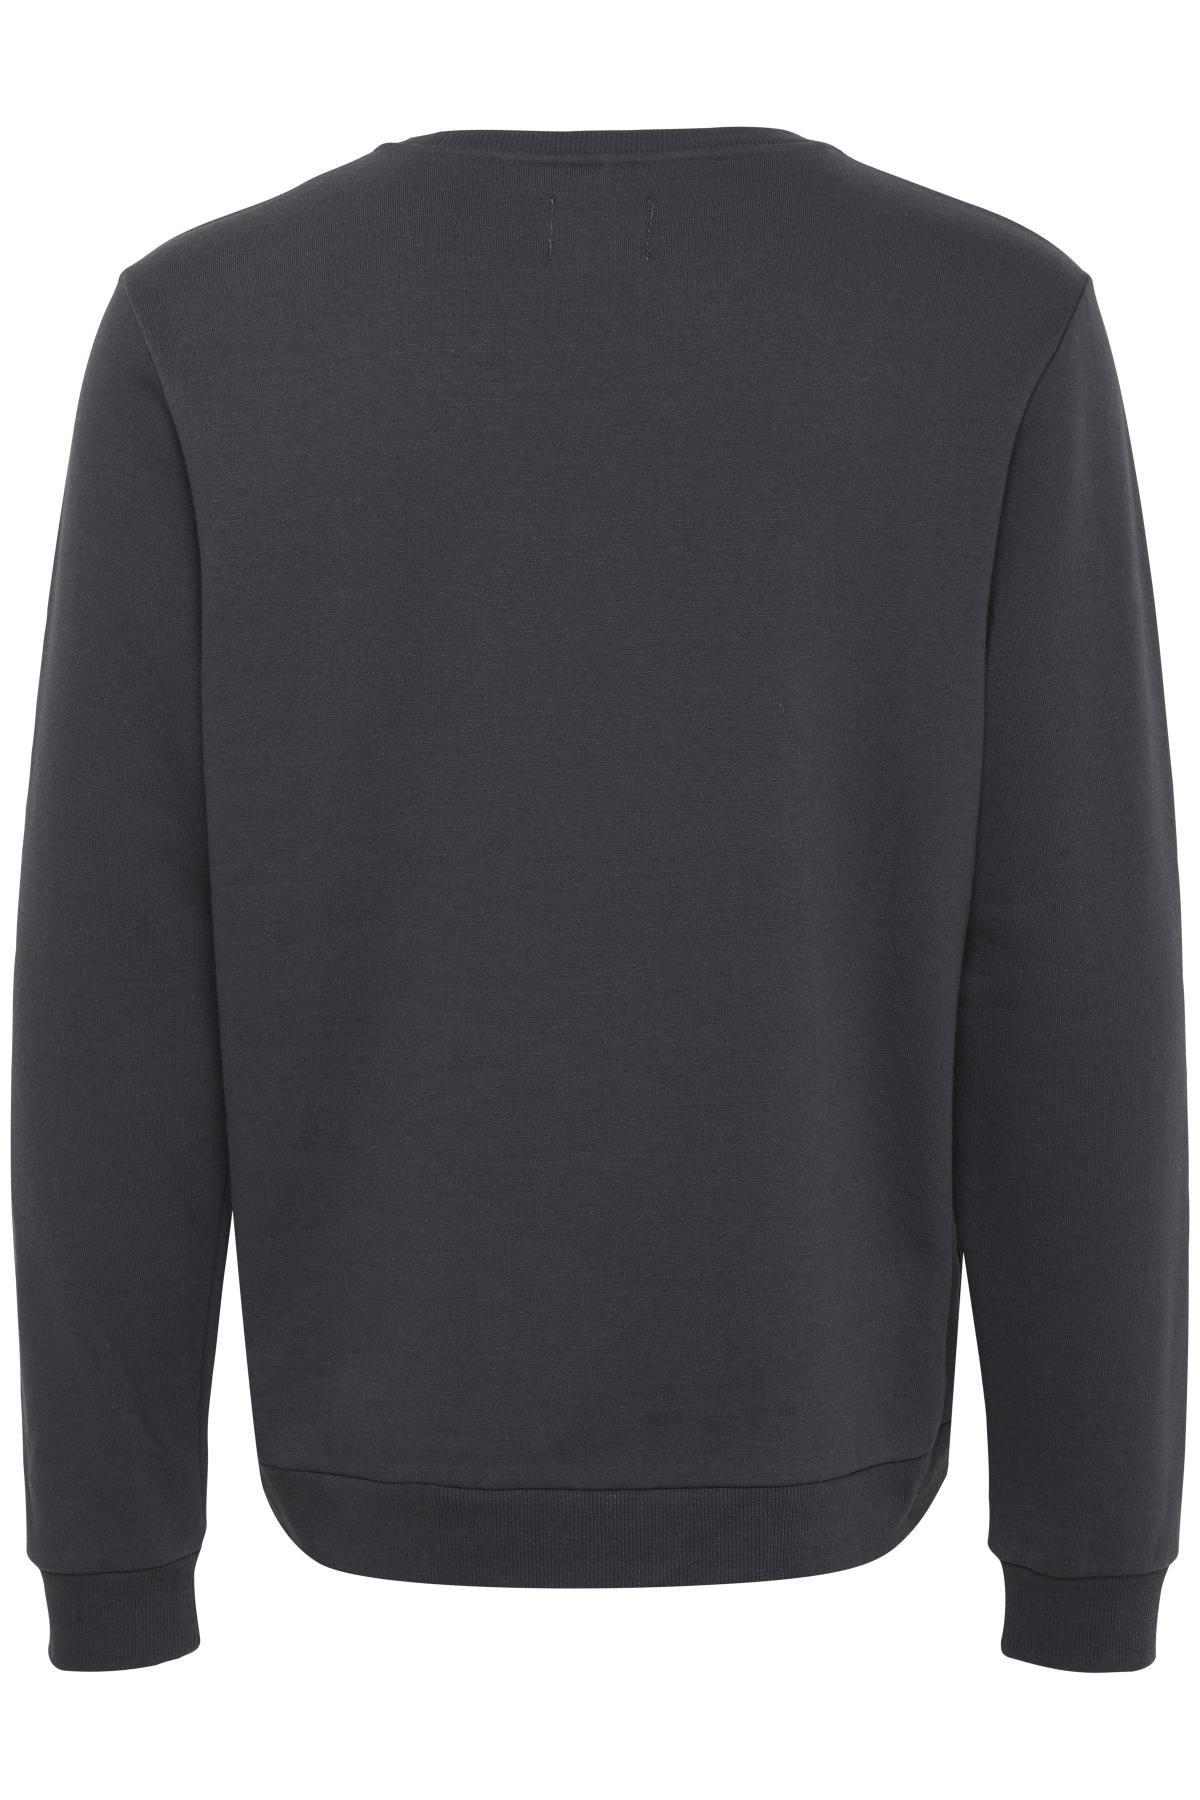 Phantom grey Sweatshirt – Køb Phantom grey Sweatshirt fra str. S-XXL her